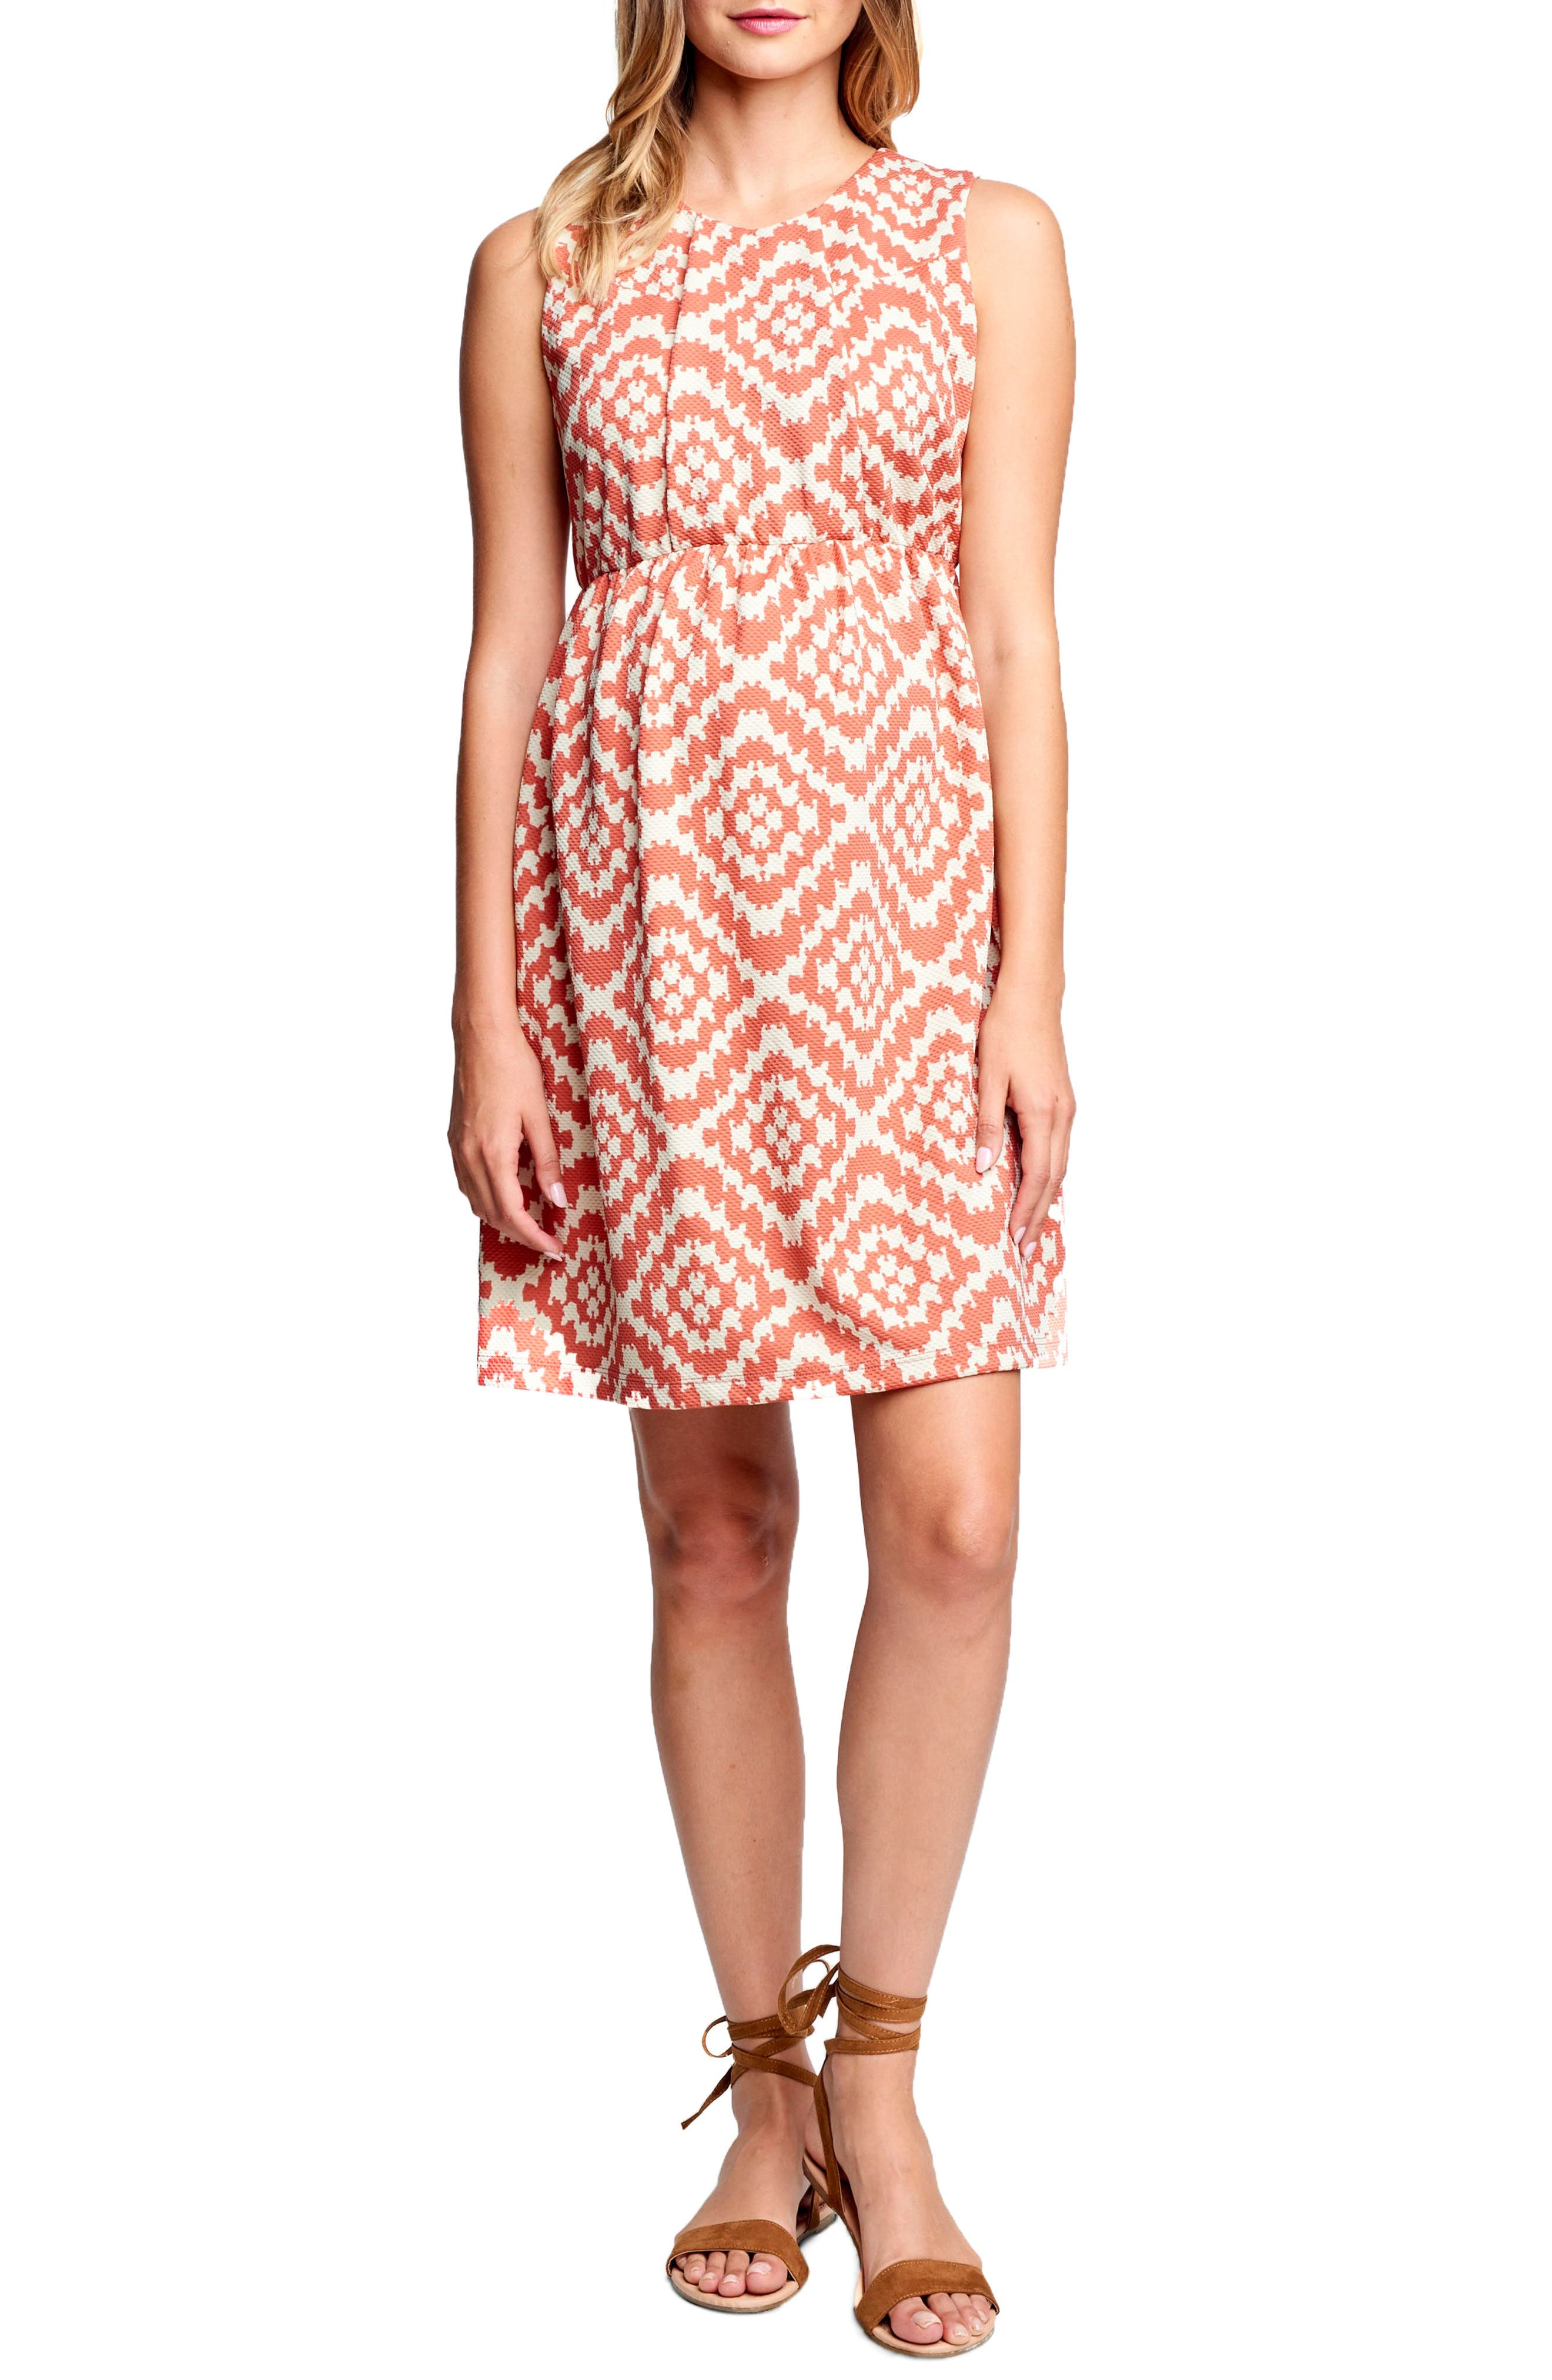 MATERNAL AMERICA, 'Vintage' Textured Maternity Dress, Main thumbnail 1, color, APRICOT TAPESTRY